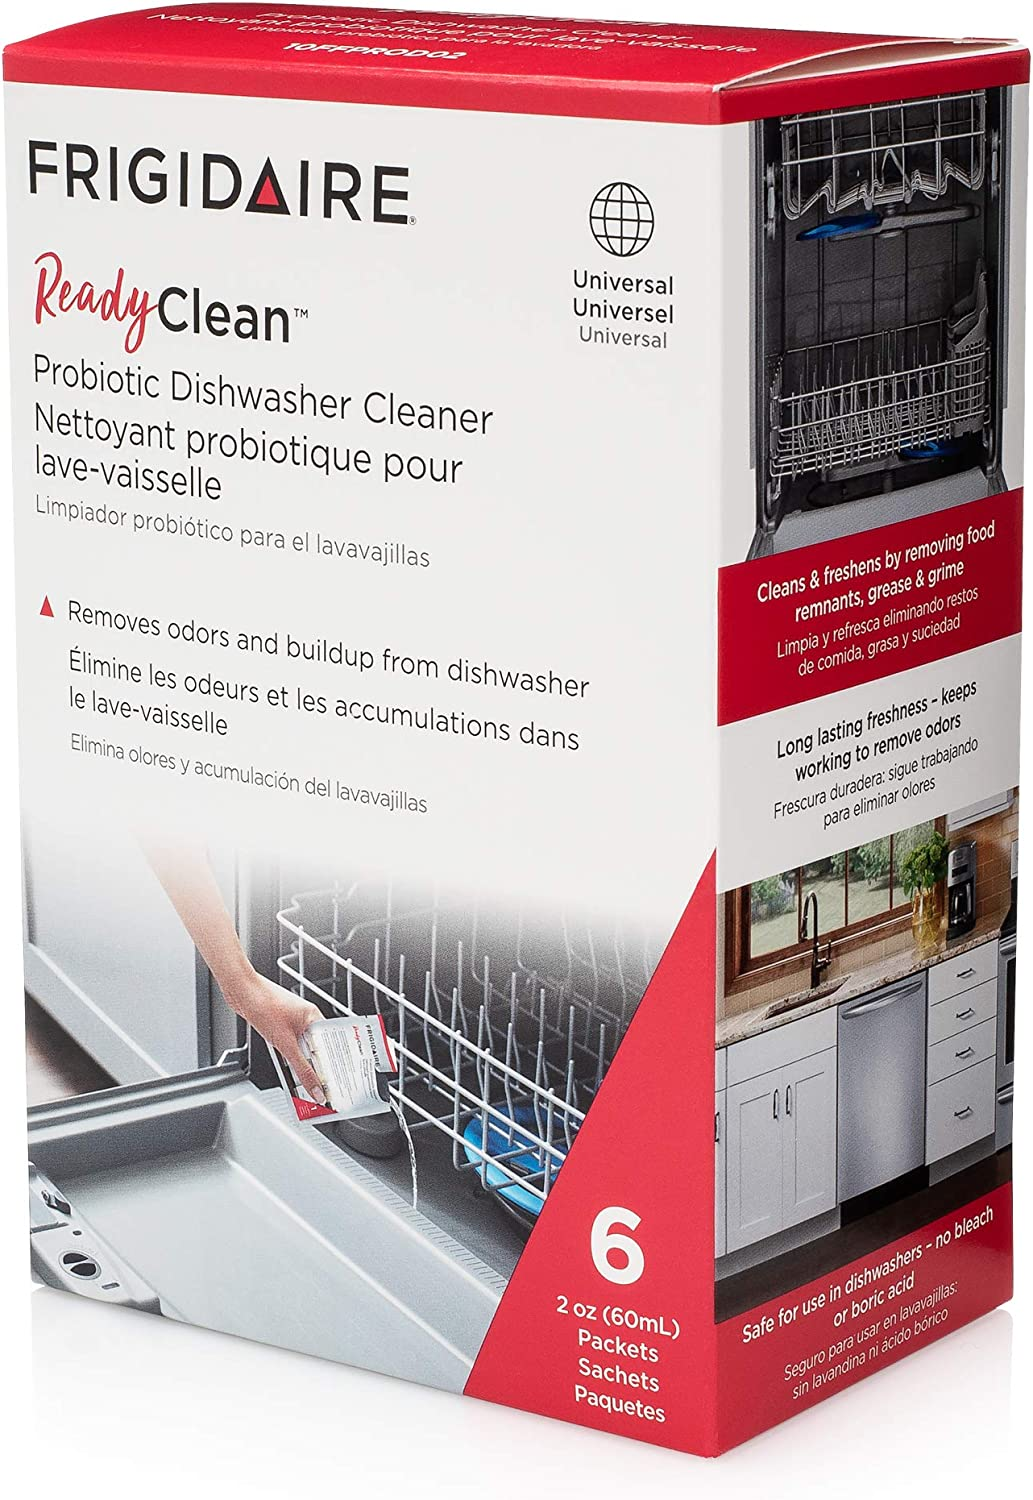 Frigidaire 10FFPROD02 ReadyClean Probiotic Dishwasher Cleaner